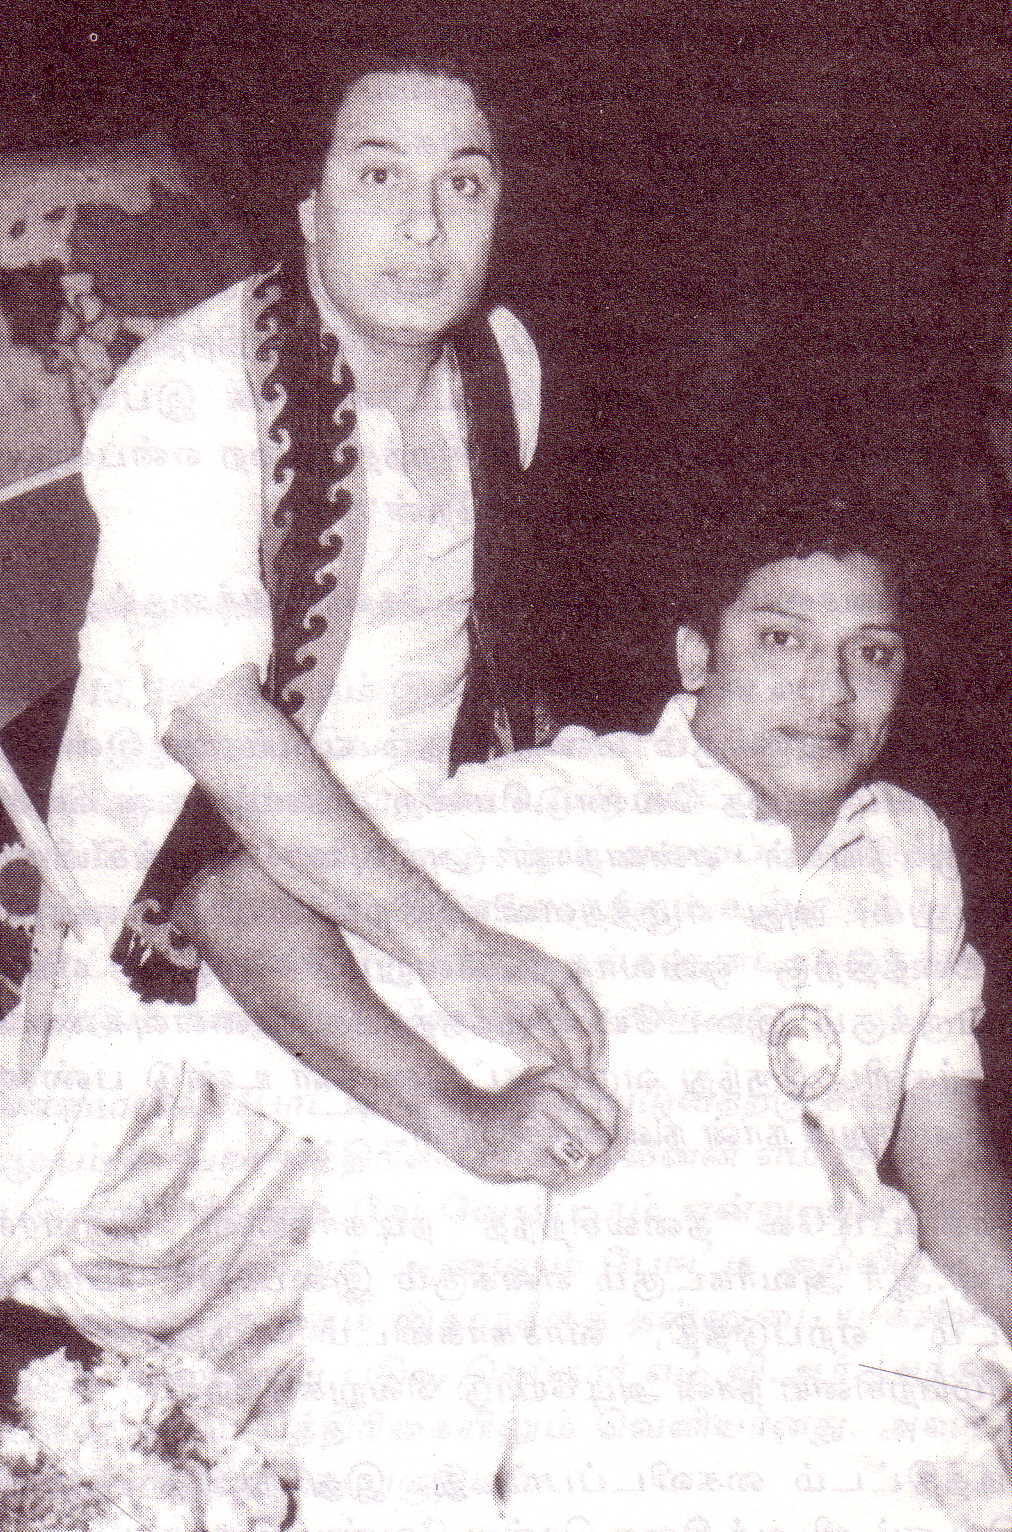 MGR with S.S.Rajendran (in late 1950s)